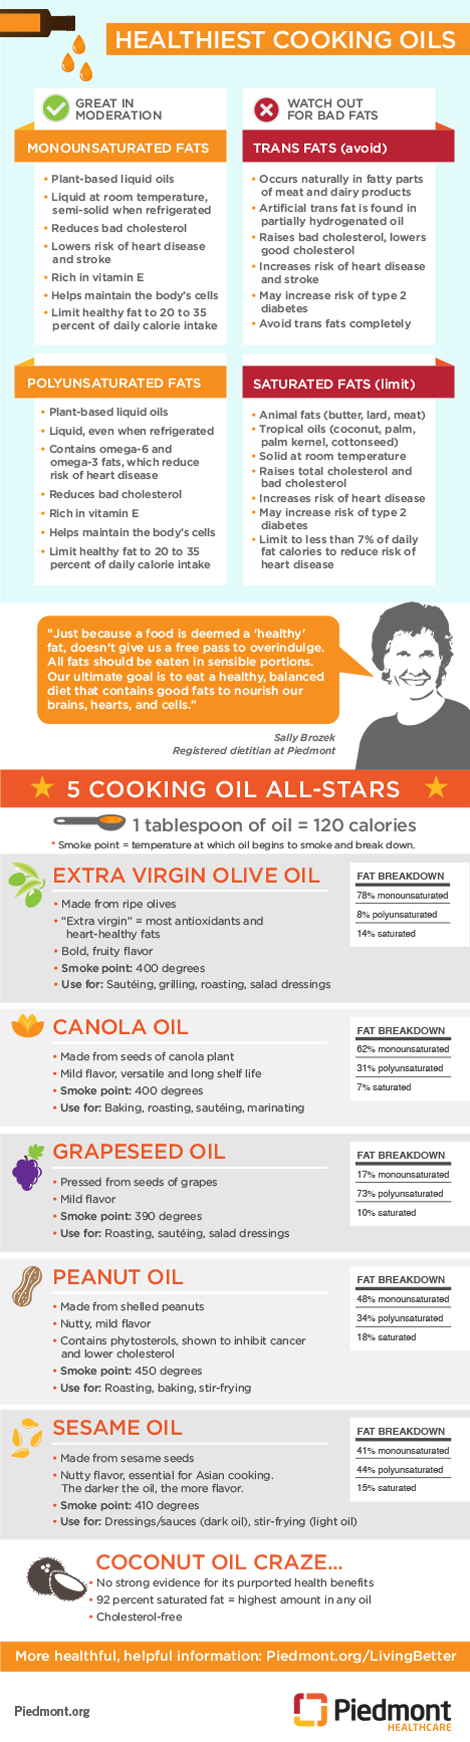 Healthiest cooking oils graphic